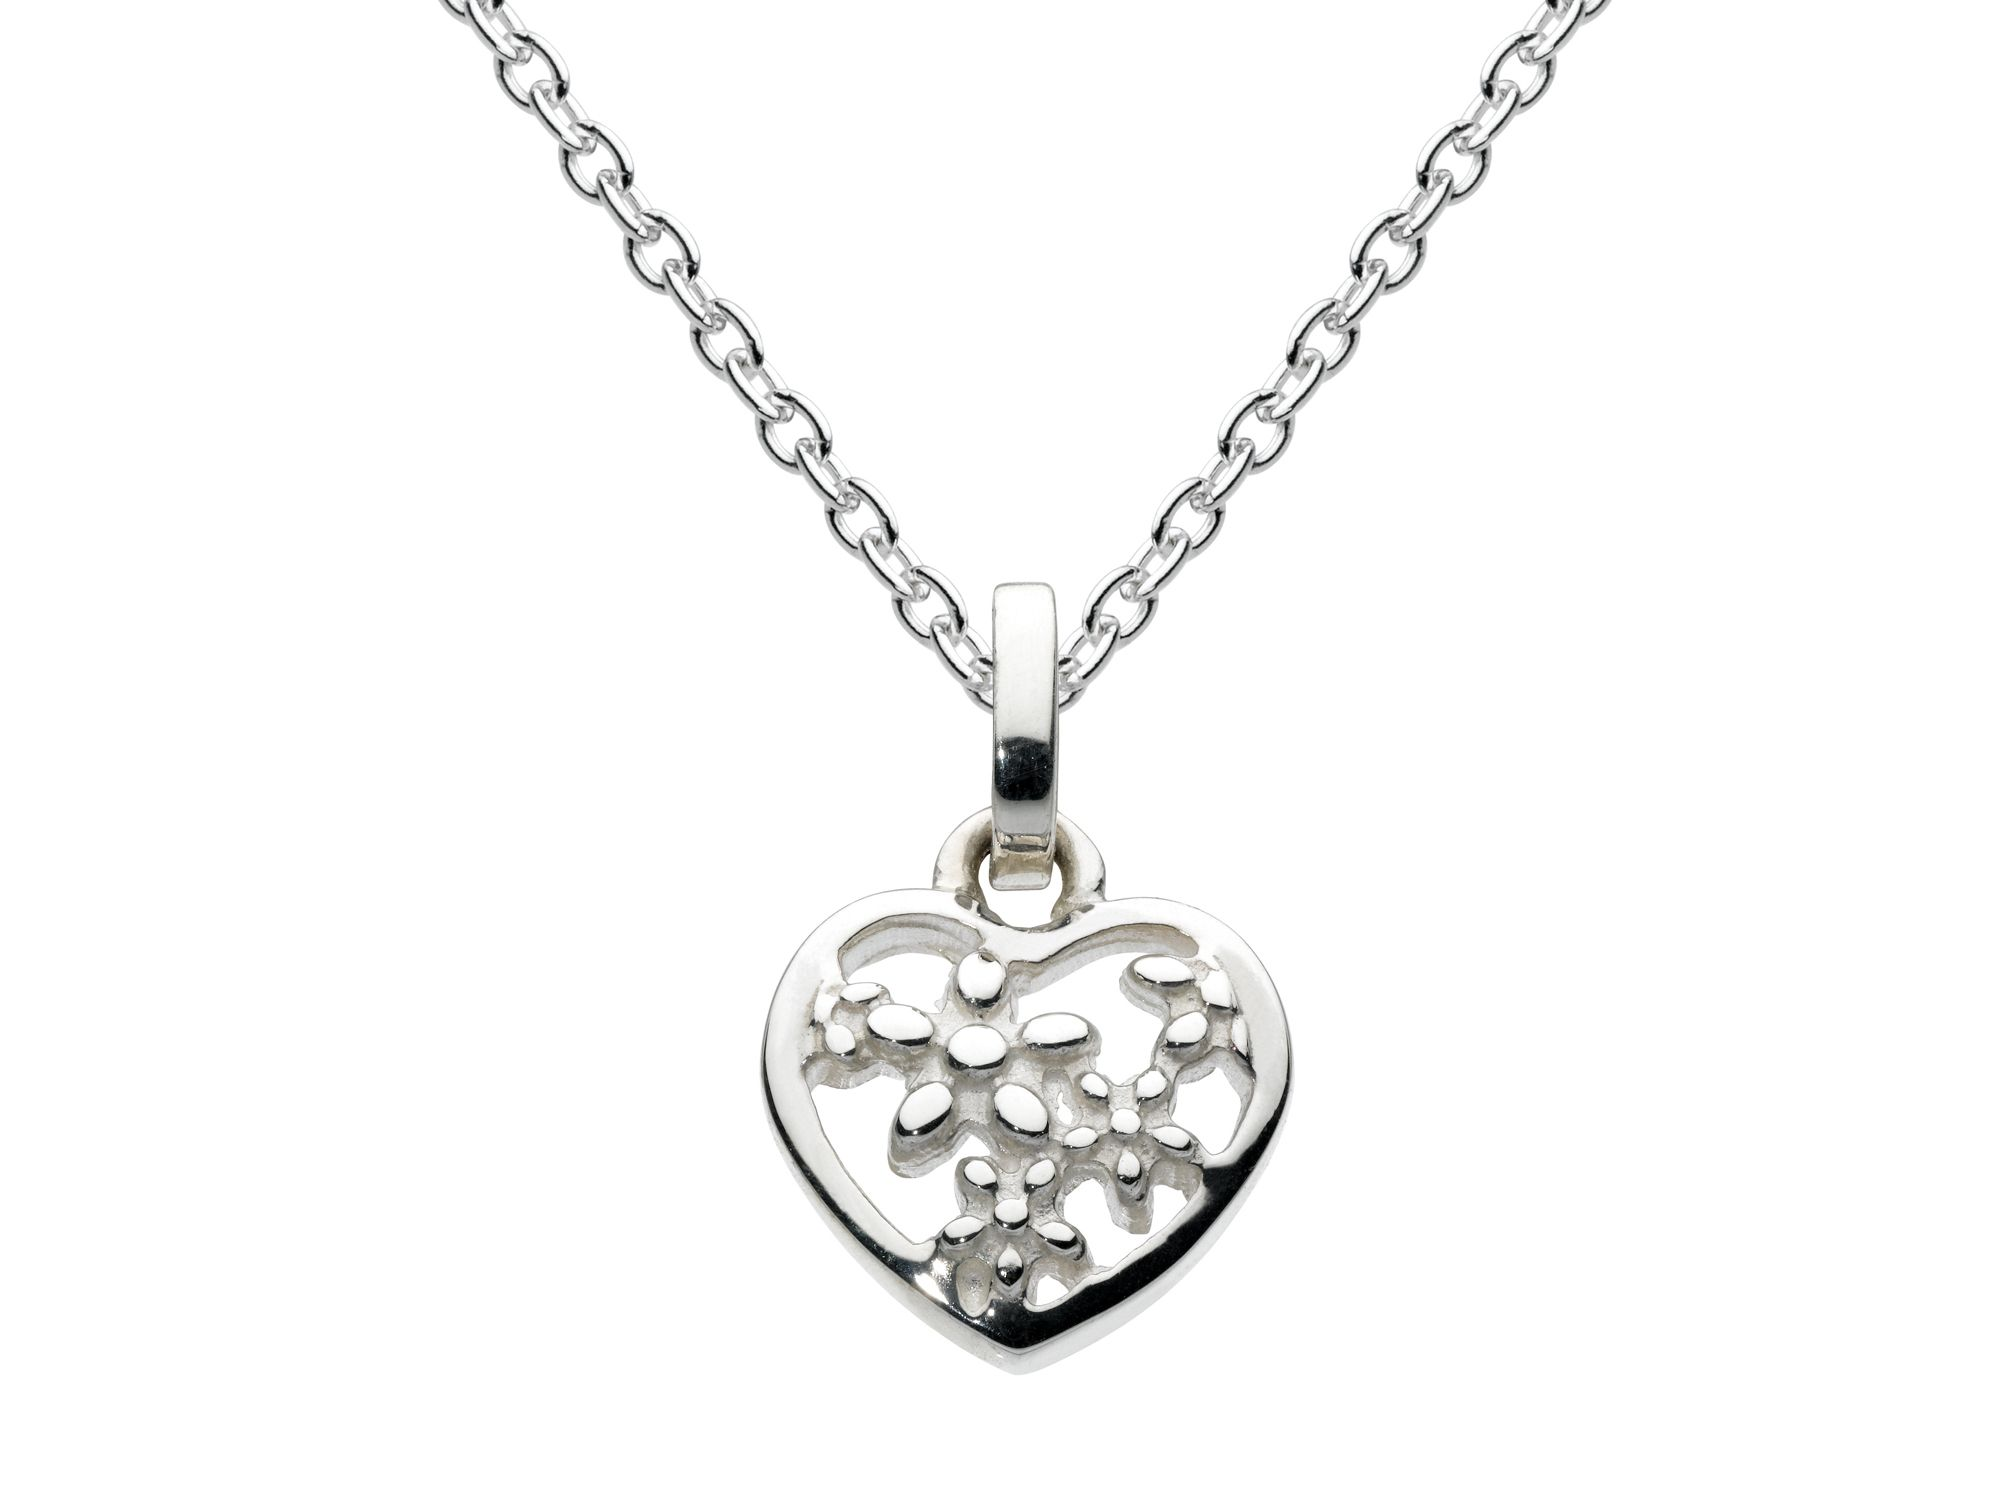 Sterling silver open flowers heart pendant